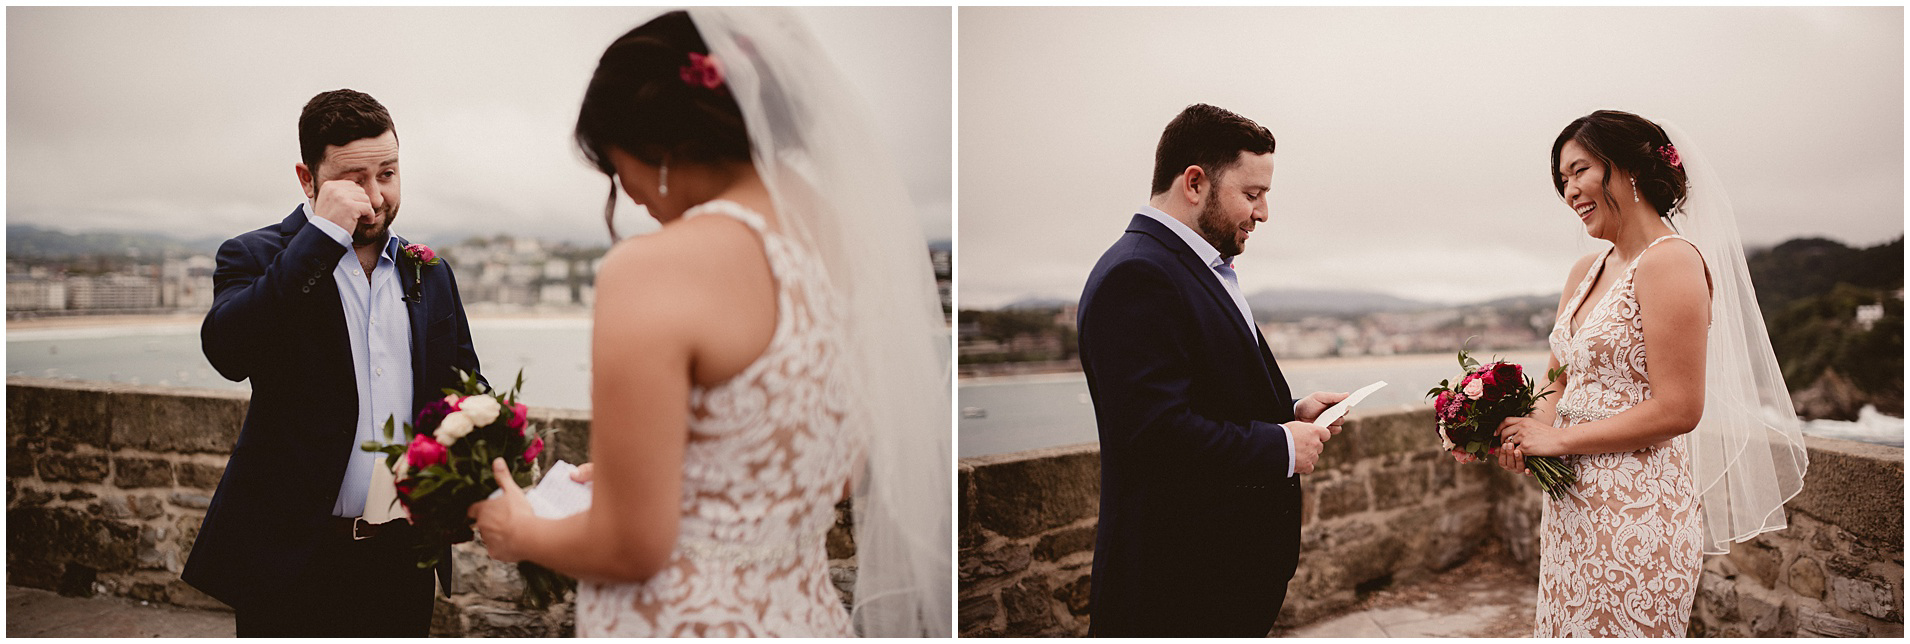 Brian & Julia - Destination wedding in San Sebastián  - Elopement in San Sebastian- ARTEFOTO32.jpg